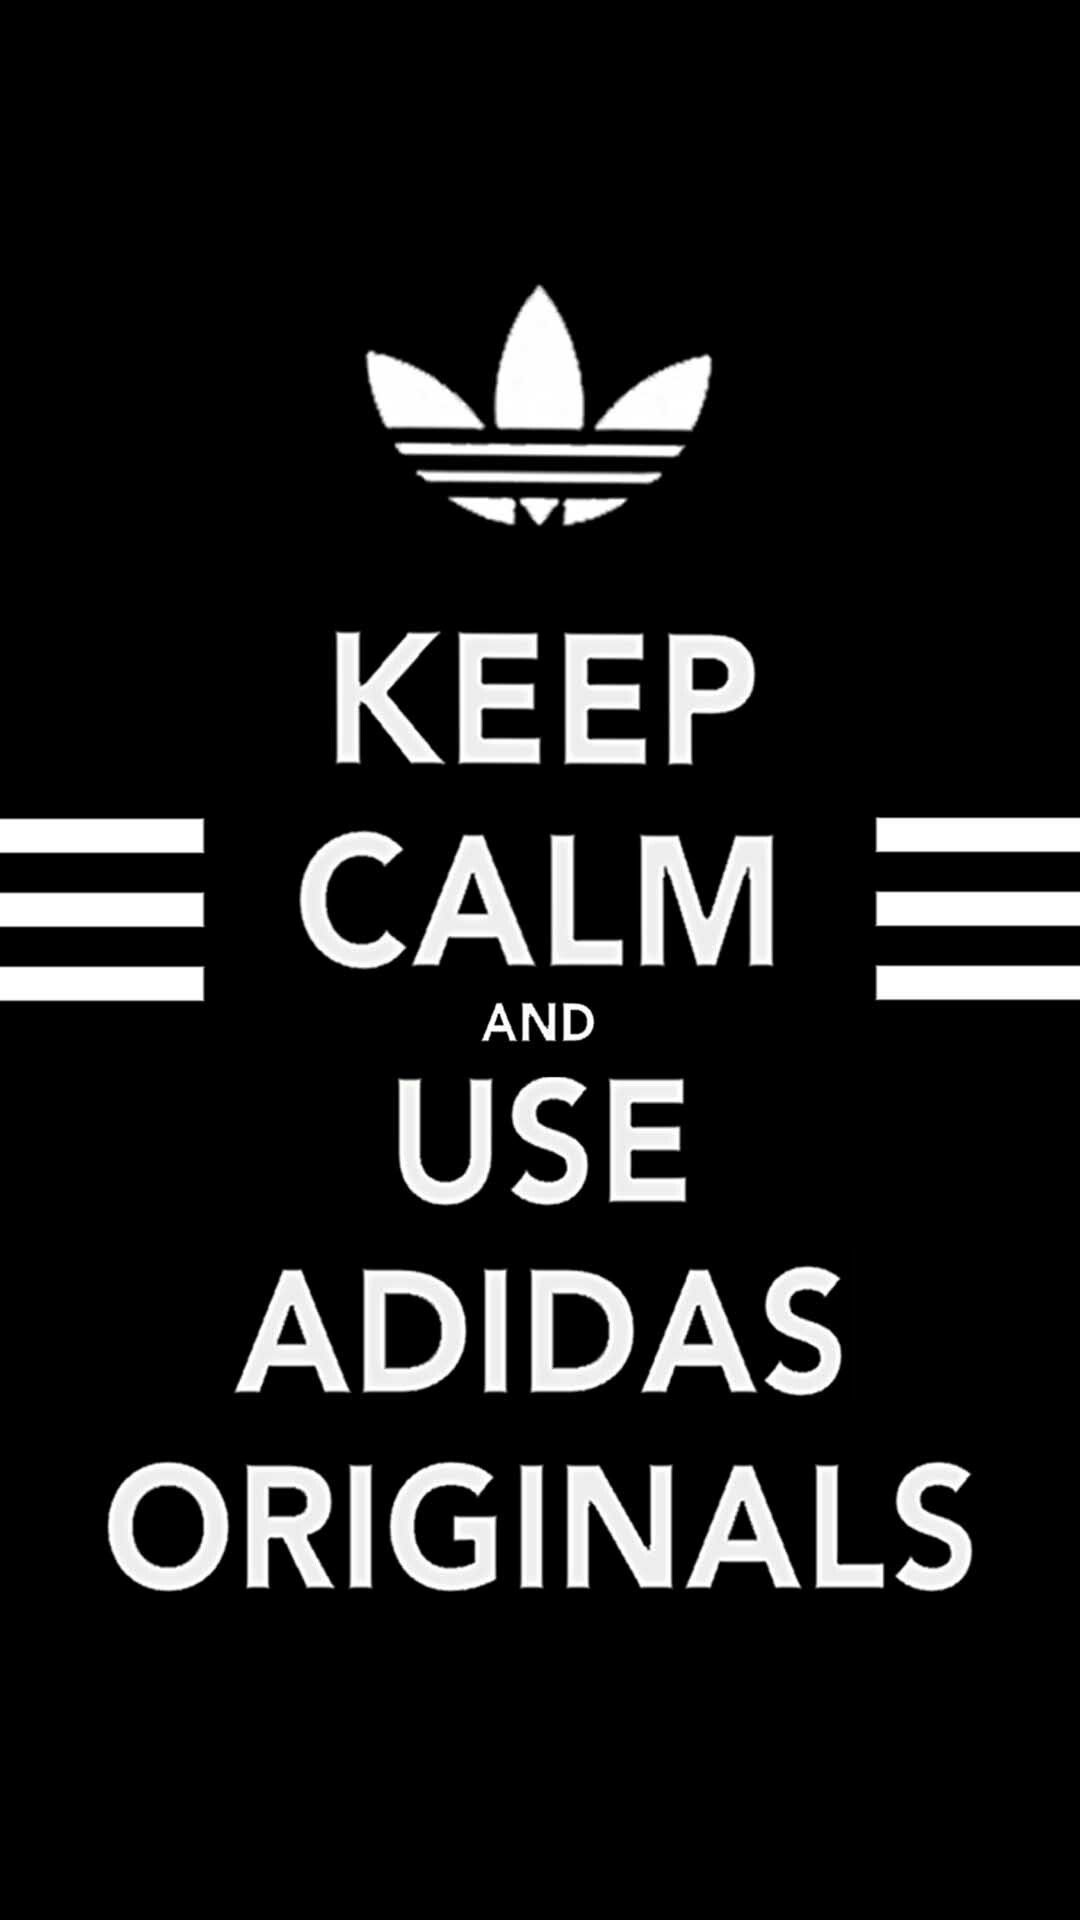 Pin By Nikkladesigns On Adidas Wallpaper Keep Calm Wallpaper Adidas Wallpapers Keep Calm